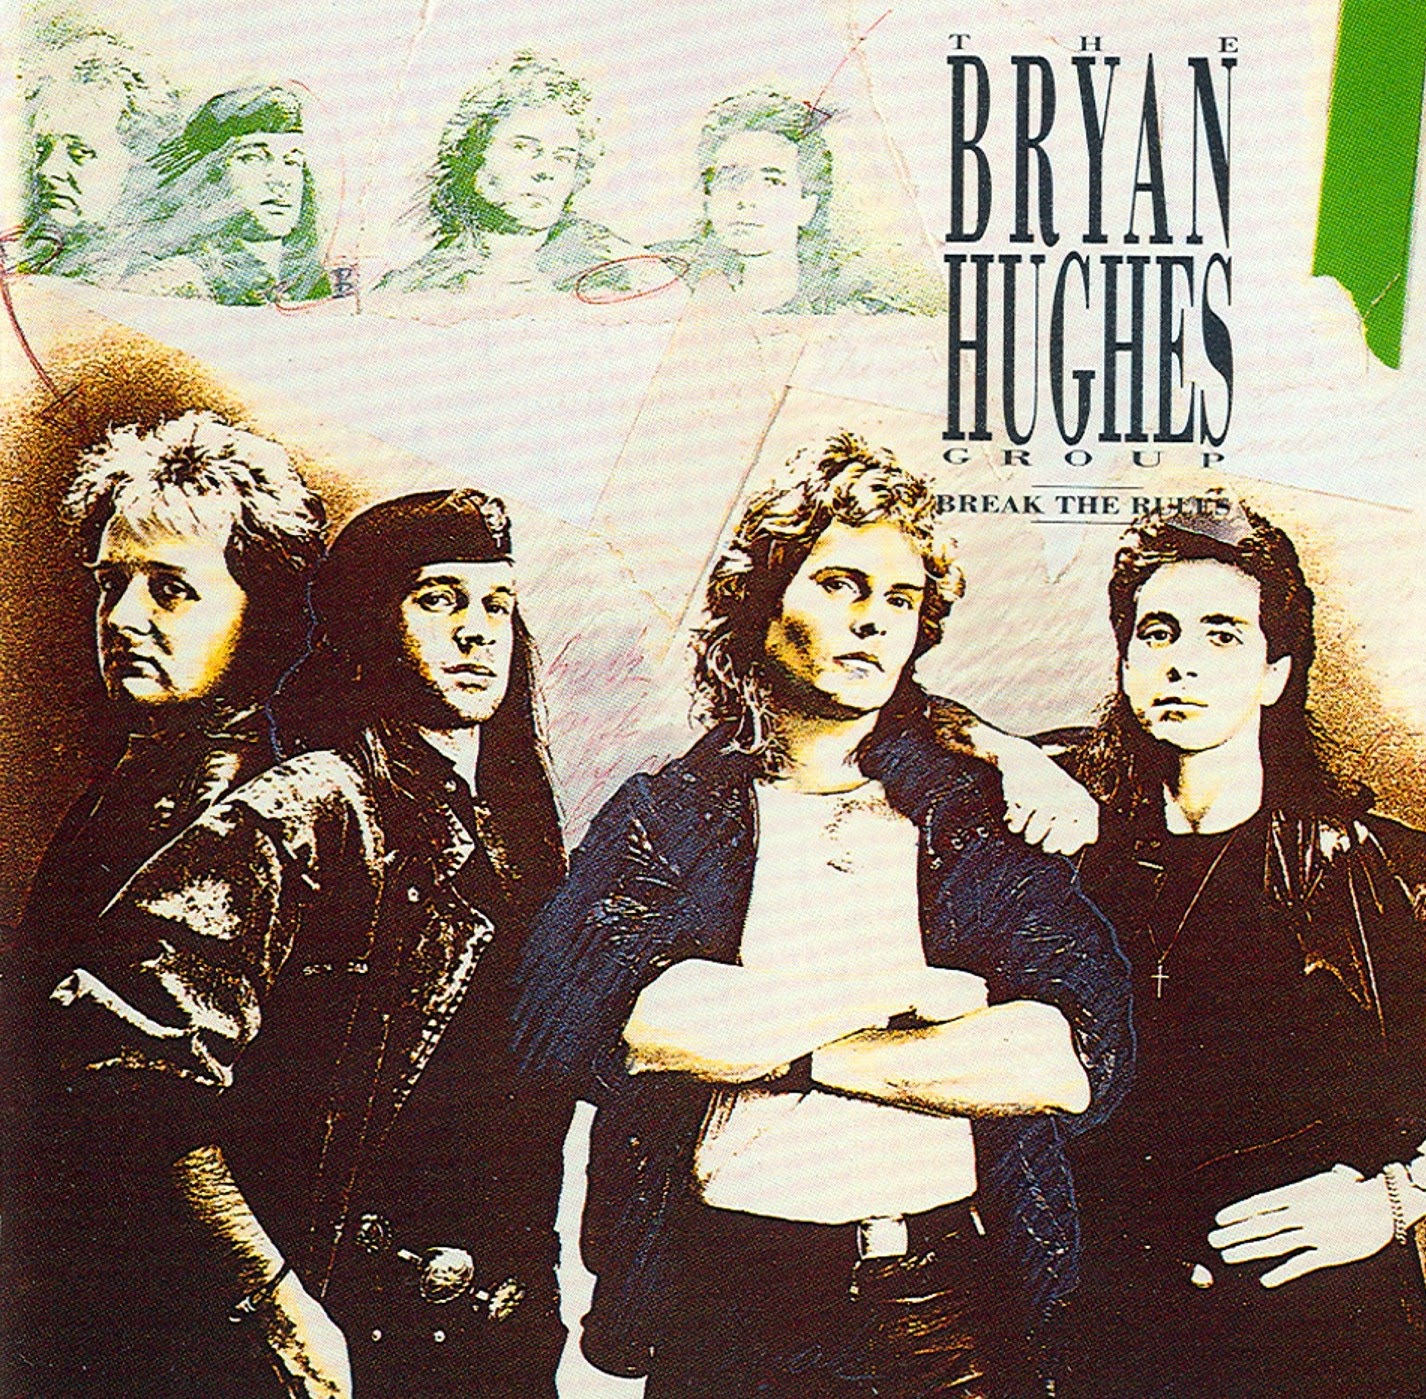 The Bryan Hughes Group Break the rules 1990 aor melodic rock